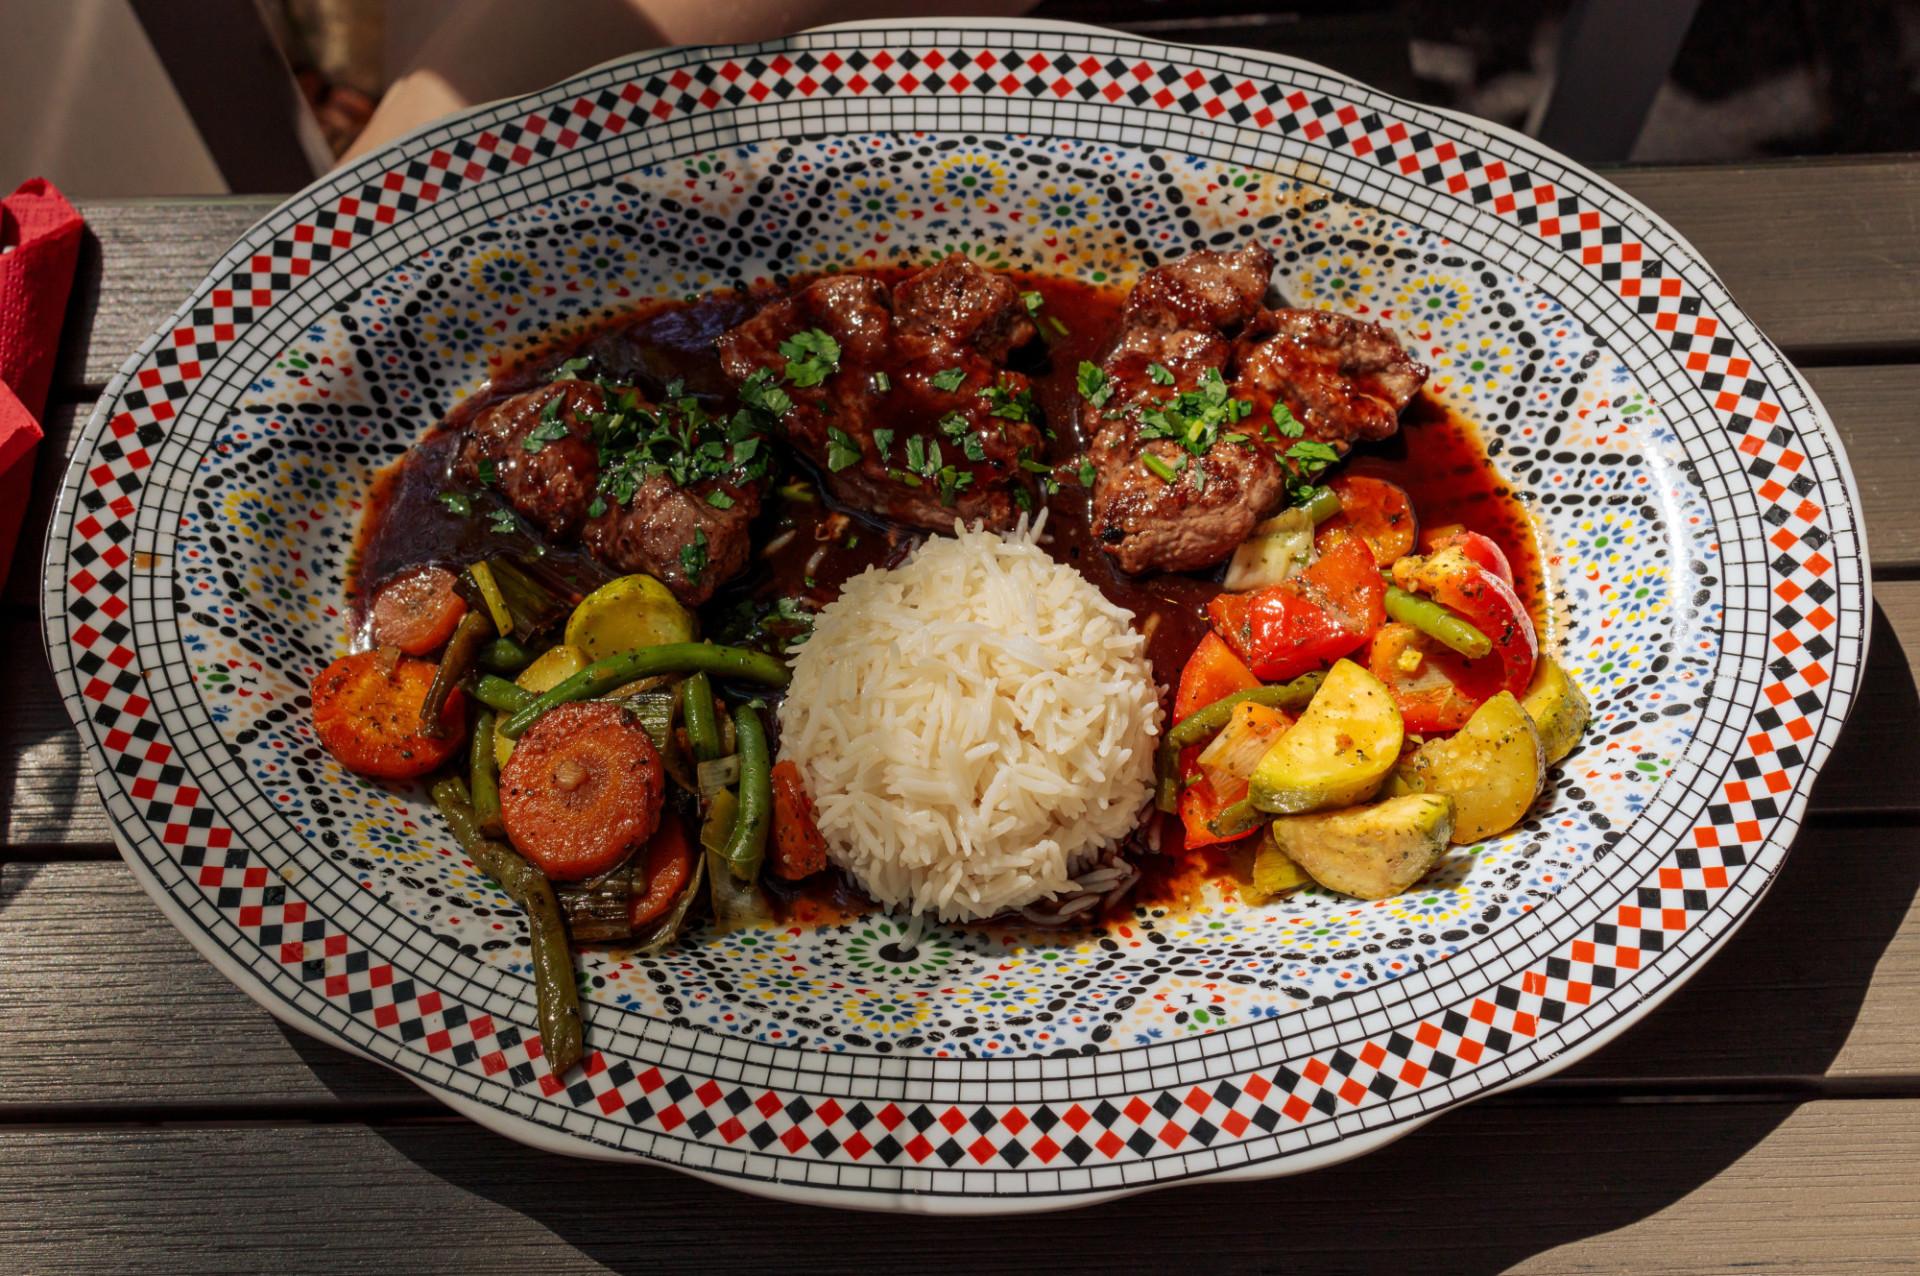 Arabian plate with lamb fillet served with rice and grilled vegetables